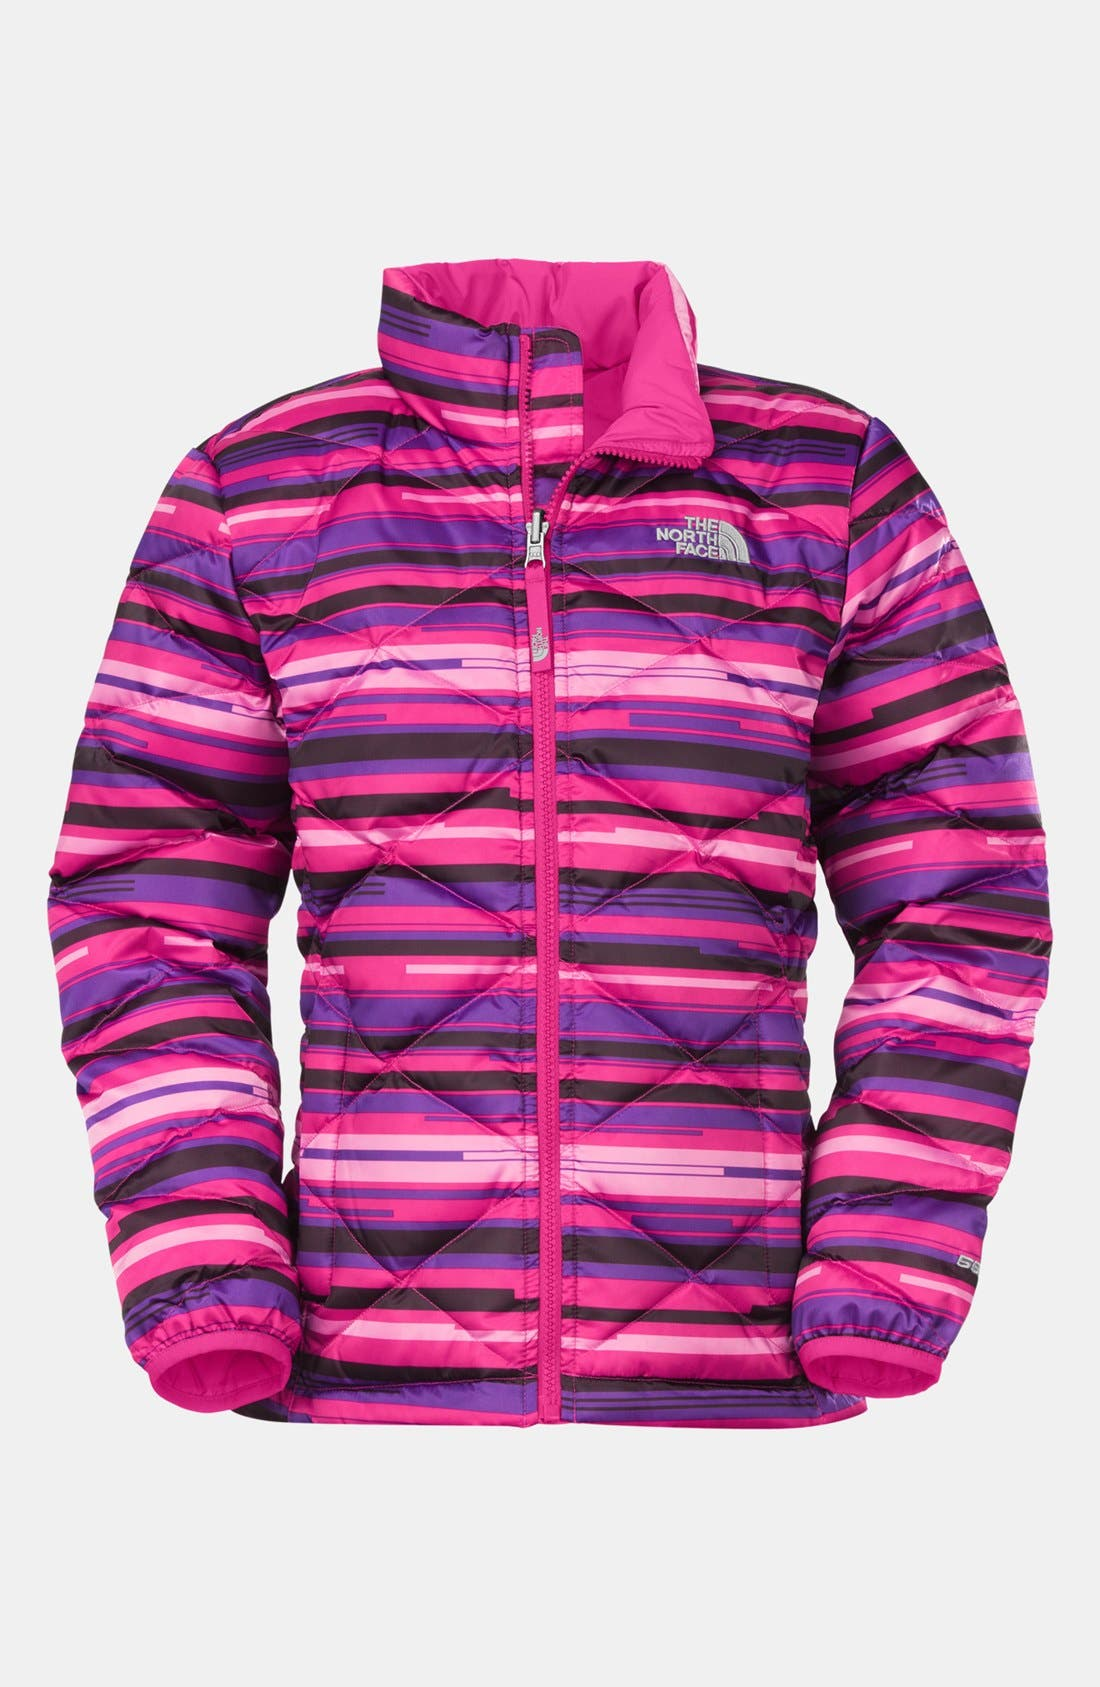 Main Image - The North Face 'Aconcagua' Jacket (Little Girls & Big Girls)